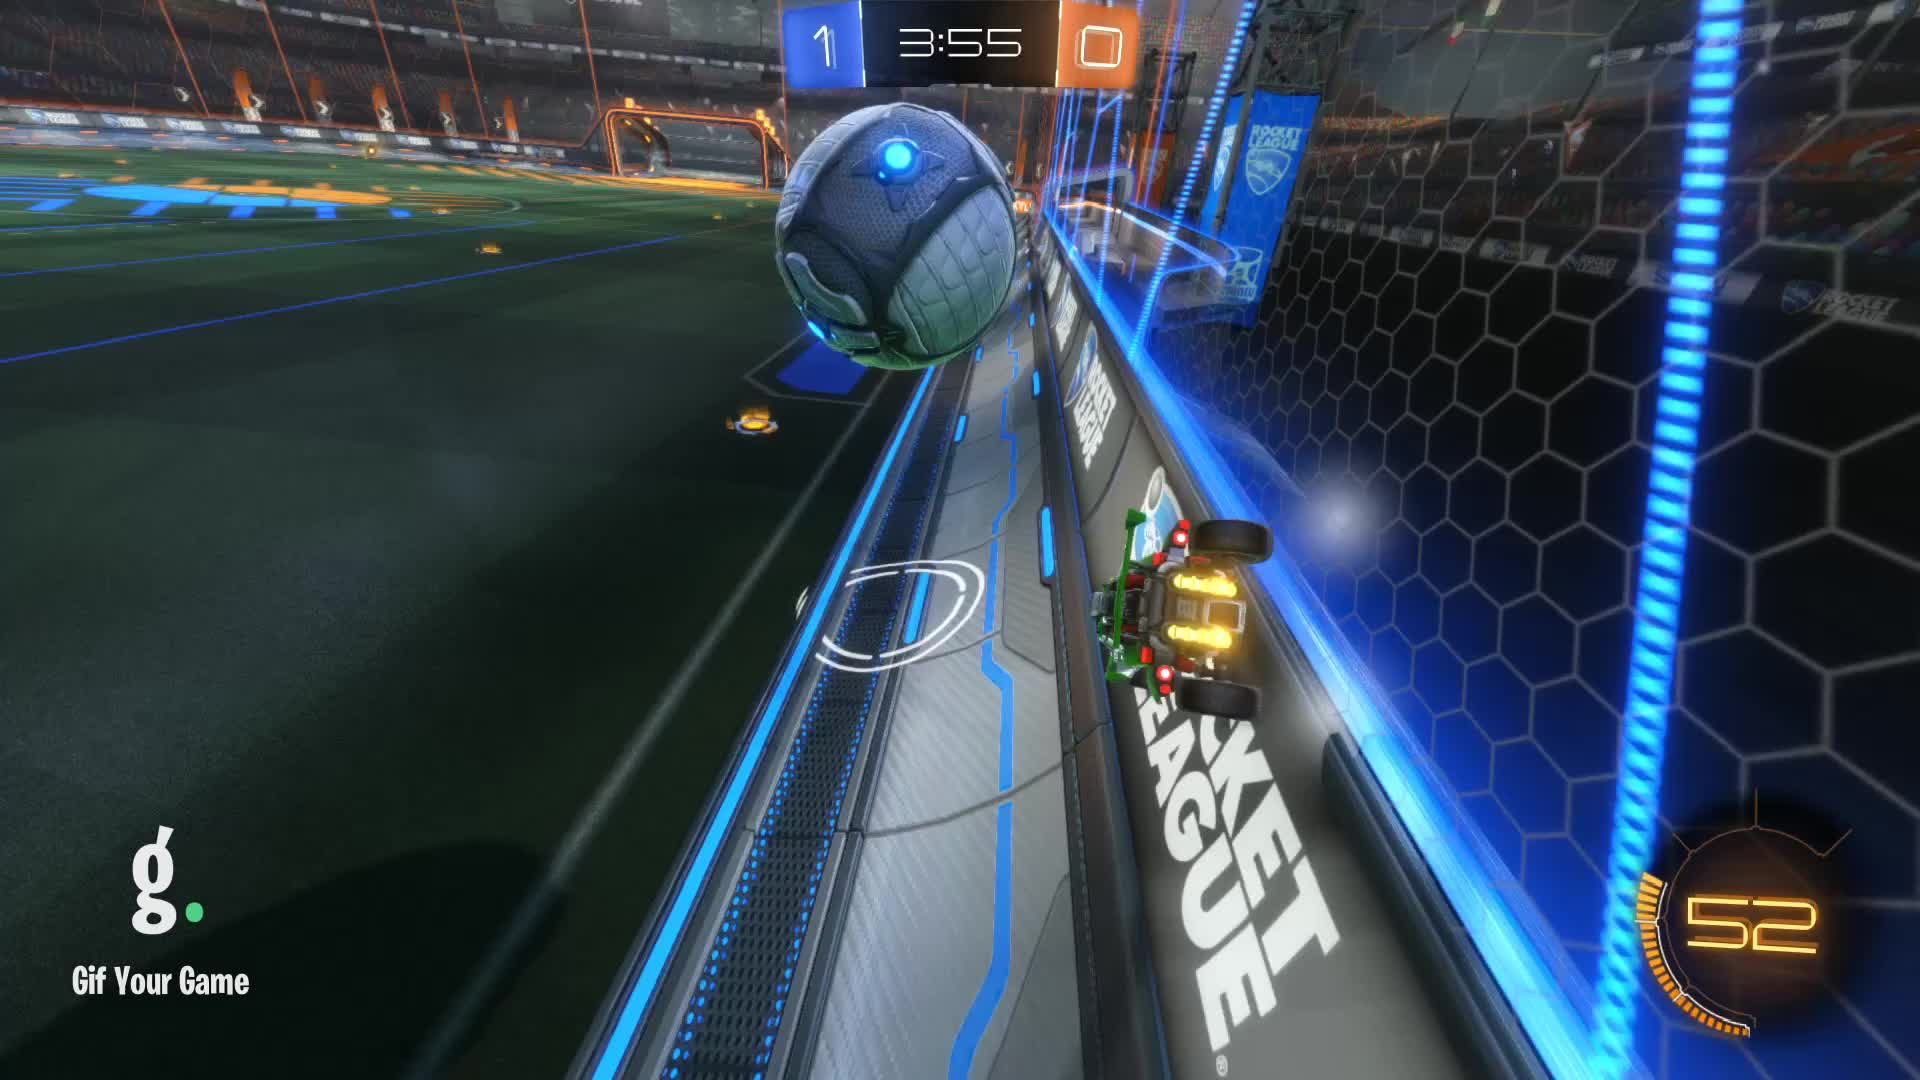 Gif Your Game, GifYourGame, Goal, Rocket League, RocketLeague, iLLixer, Goal 2: iLLixer GIFs